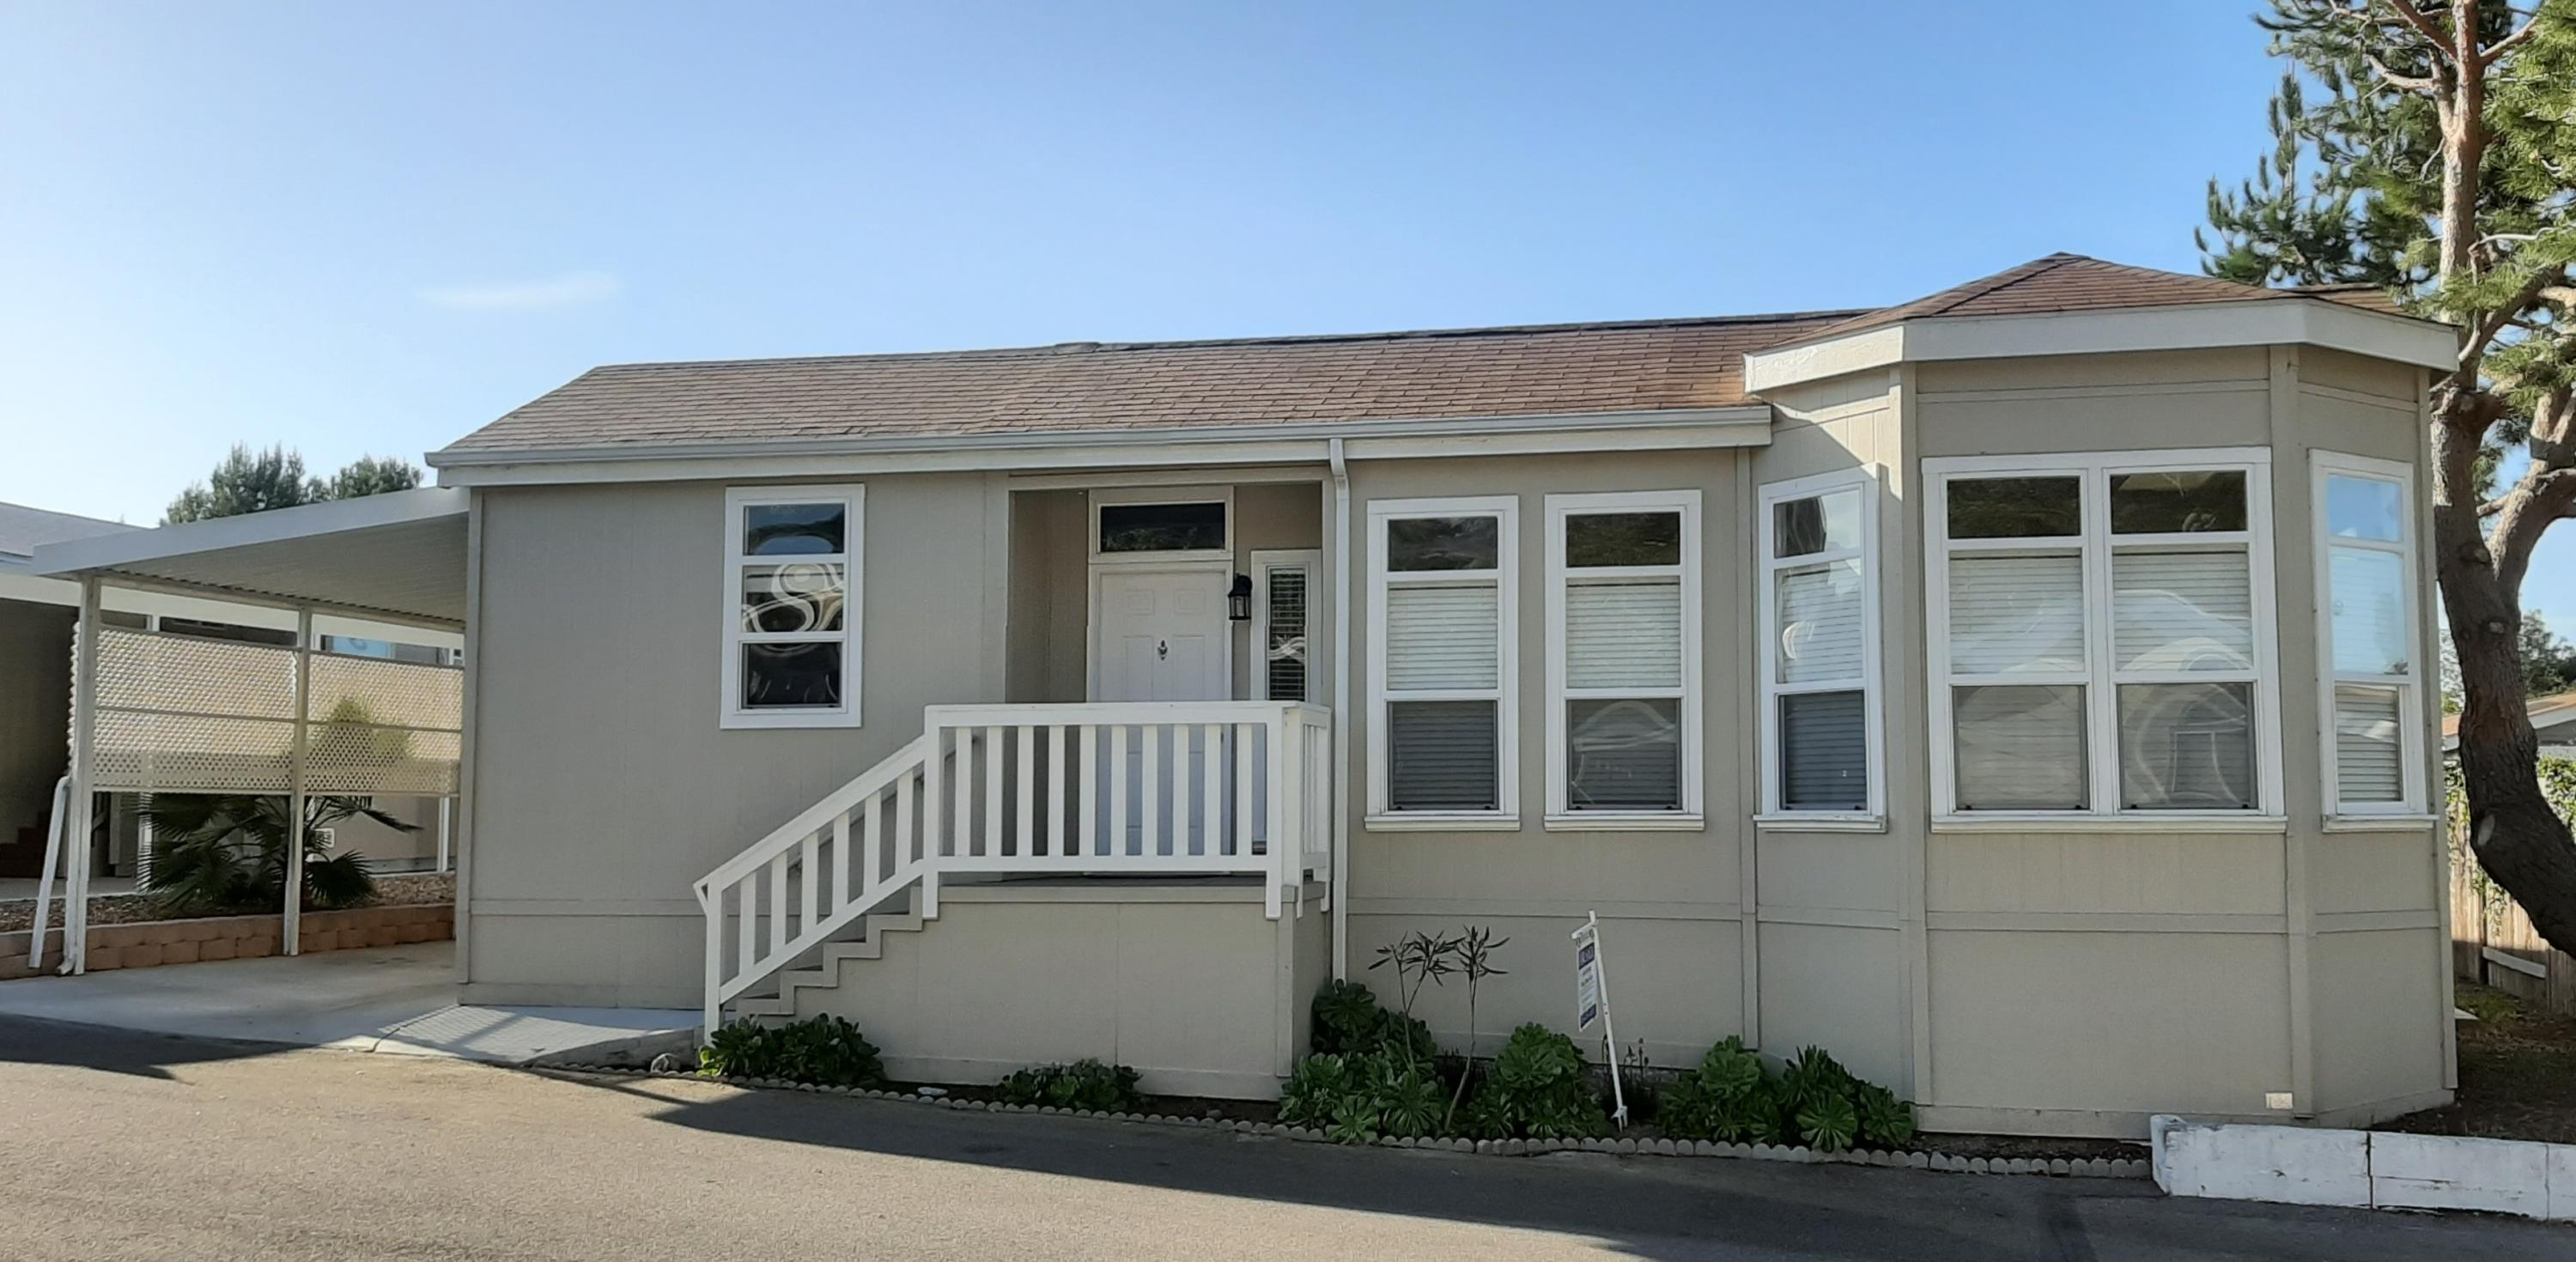 Located in the La Cumbre Mobilehome Park, this 2015 triple wide home shows like new. Appointments include Alder HW cabinets, SS appliances, 9' ceilings with transom windows, sky lights, awesome mountain views, a very large and very private back yard with patio, utility room, and is also located on a cul-de-sac making for a very private and quiet location.